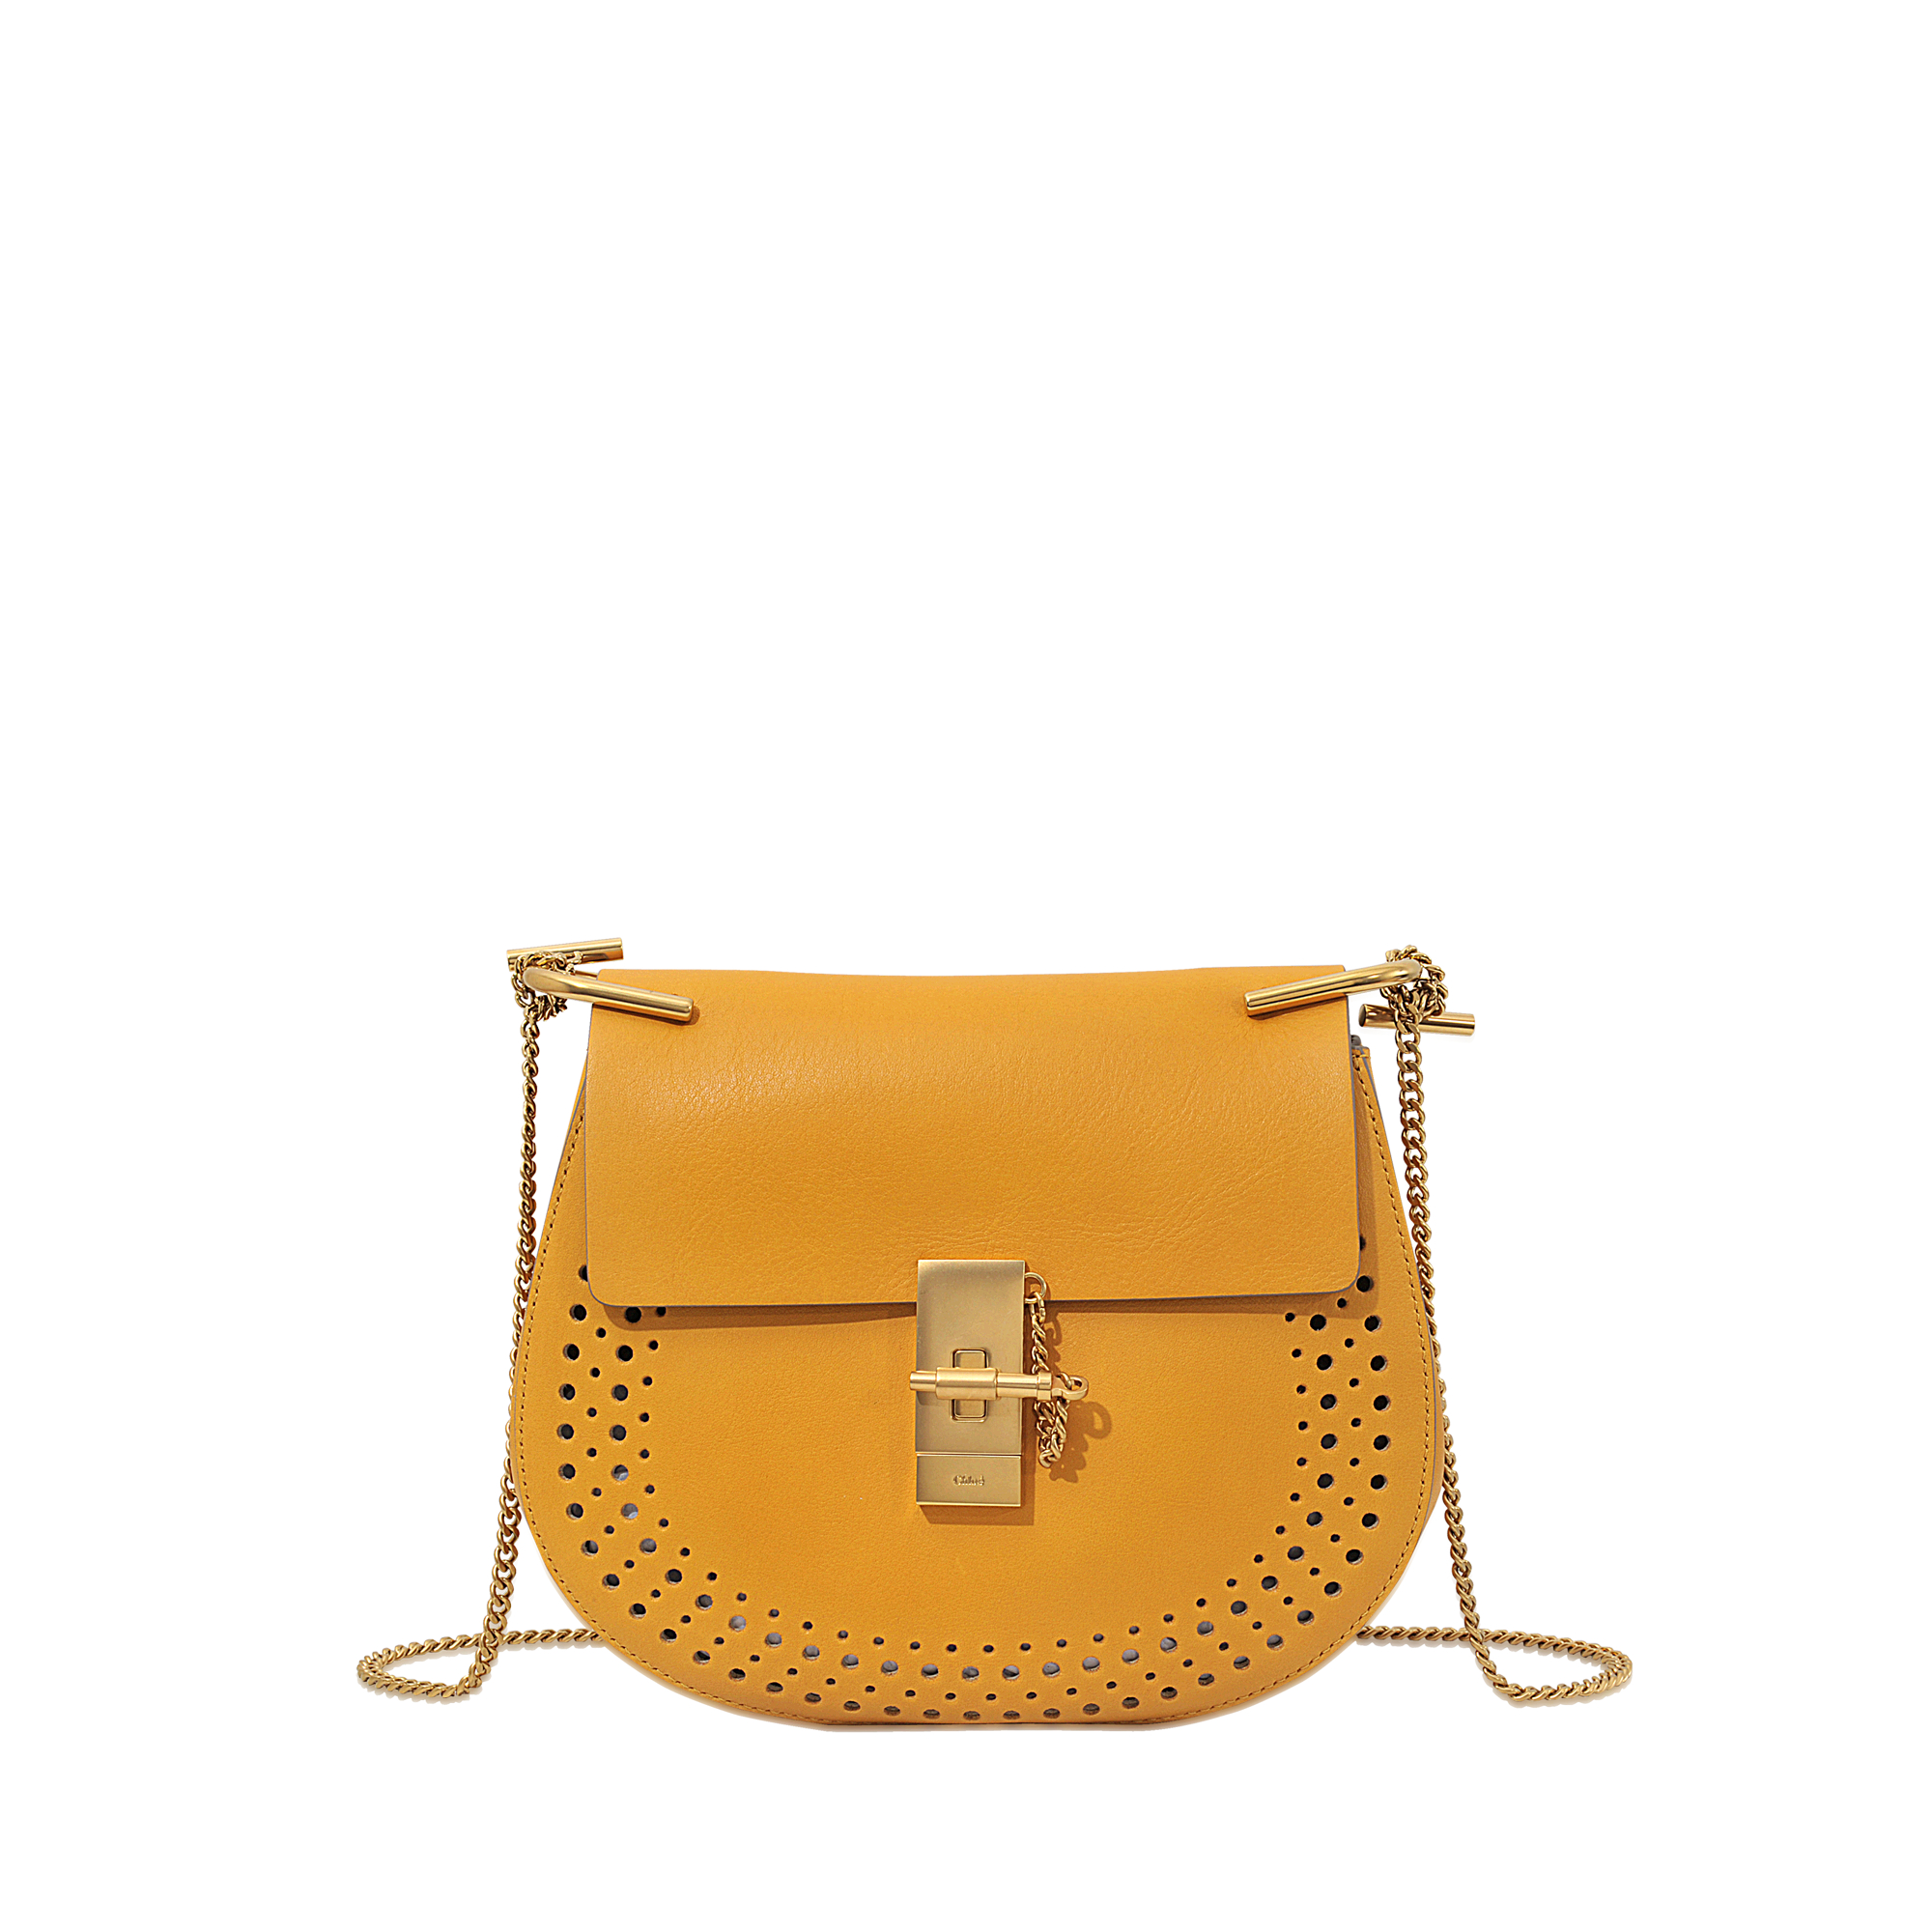 Chlo�� Drew Perforated Small Saddle Bag in Yellow | Lyst